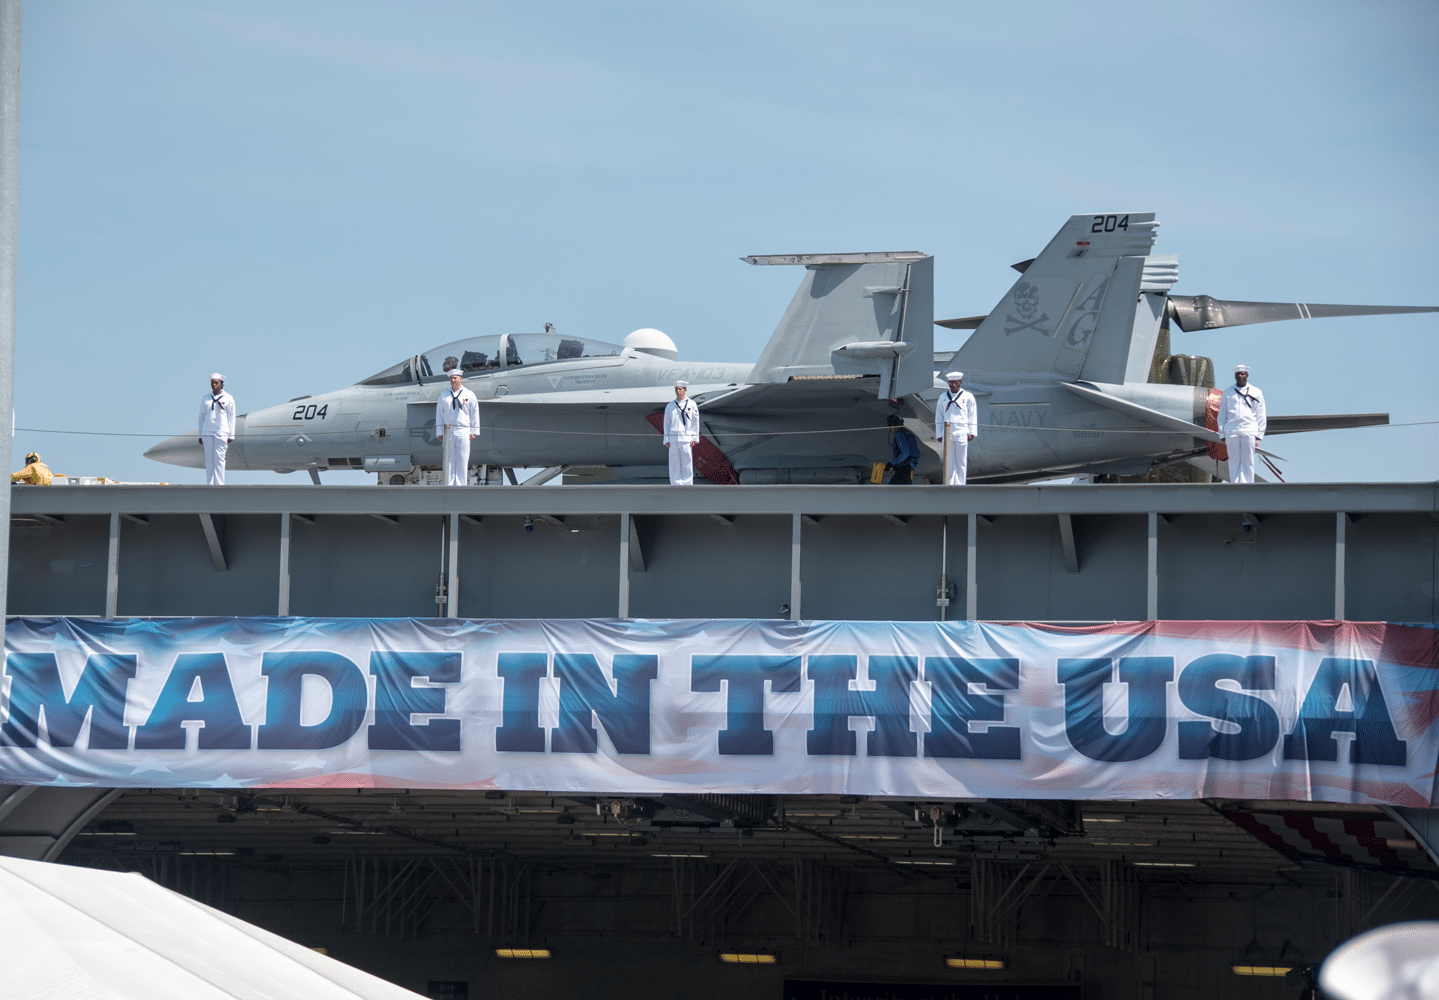 United States Navy Sailors man the rails of the aircraft carrier USS Gerald R. Ford during its commissioning ceremony at Naval Station Norfolk, VA. Ford is the lead ship of the Ford-class aircraft carriers, and the first new U.S. aircraft carrier designed in 40 years.